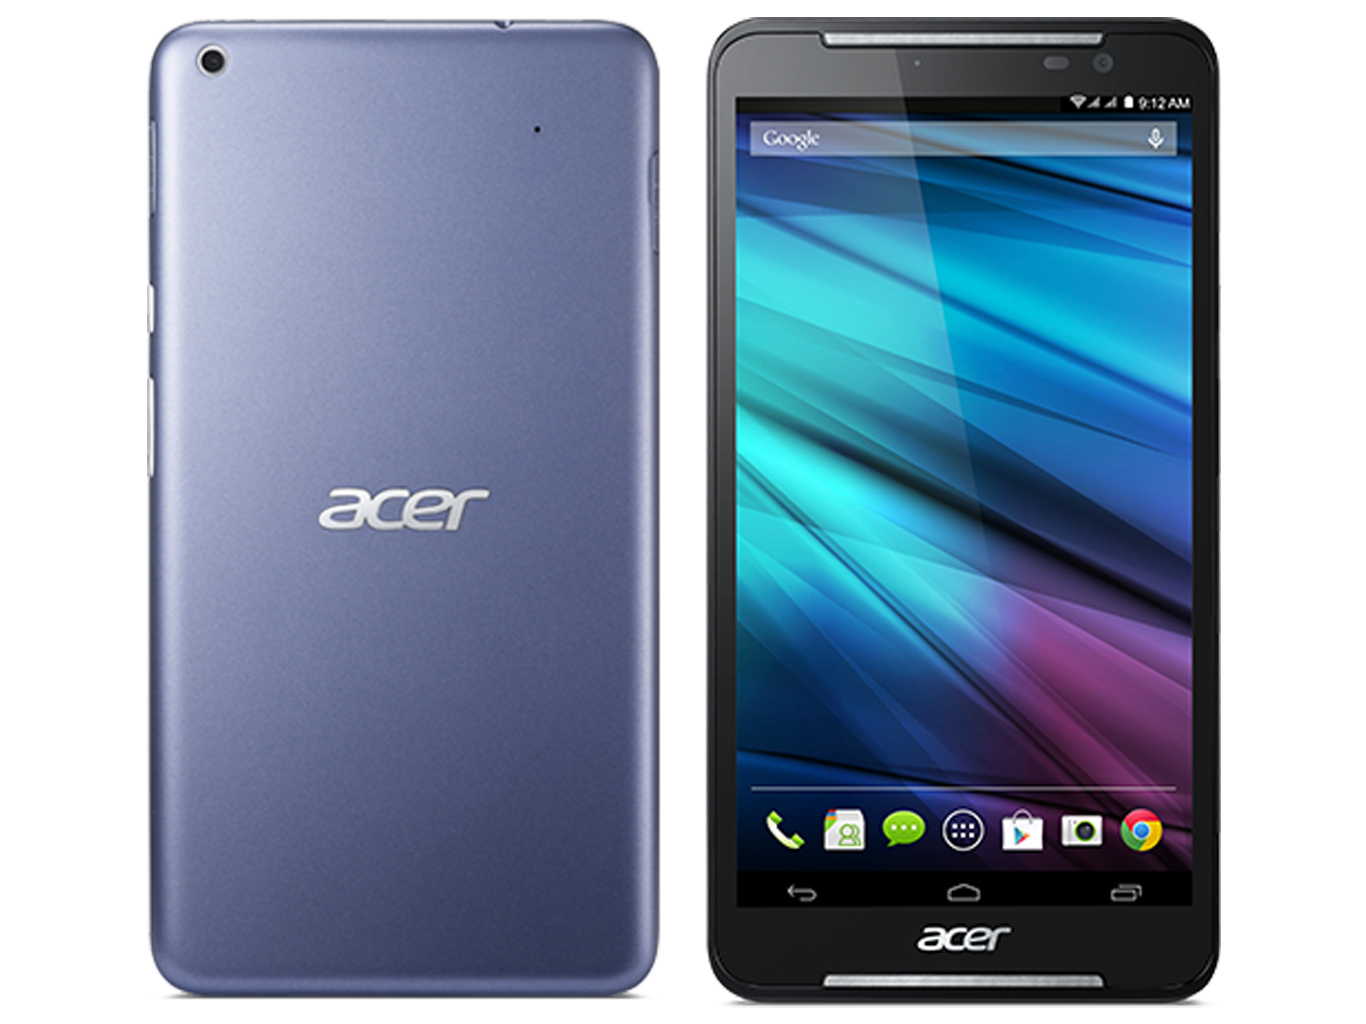 Acer swells smartphone market with three new devices